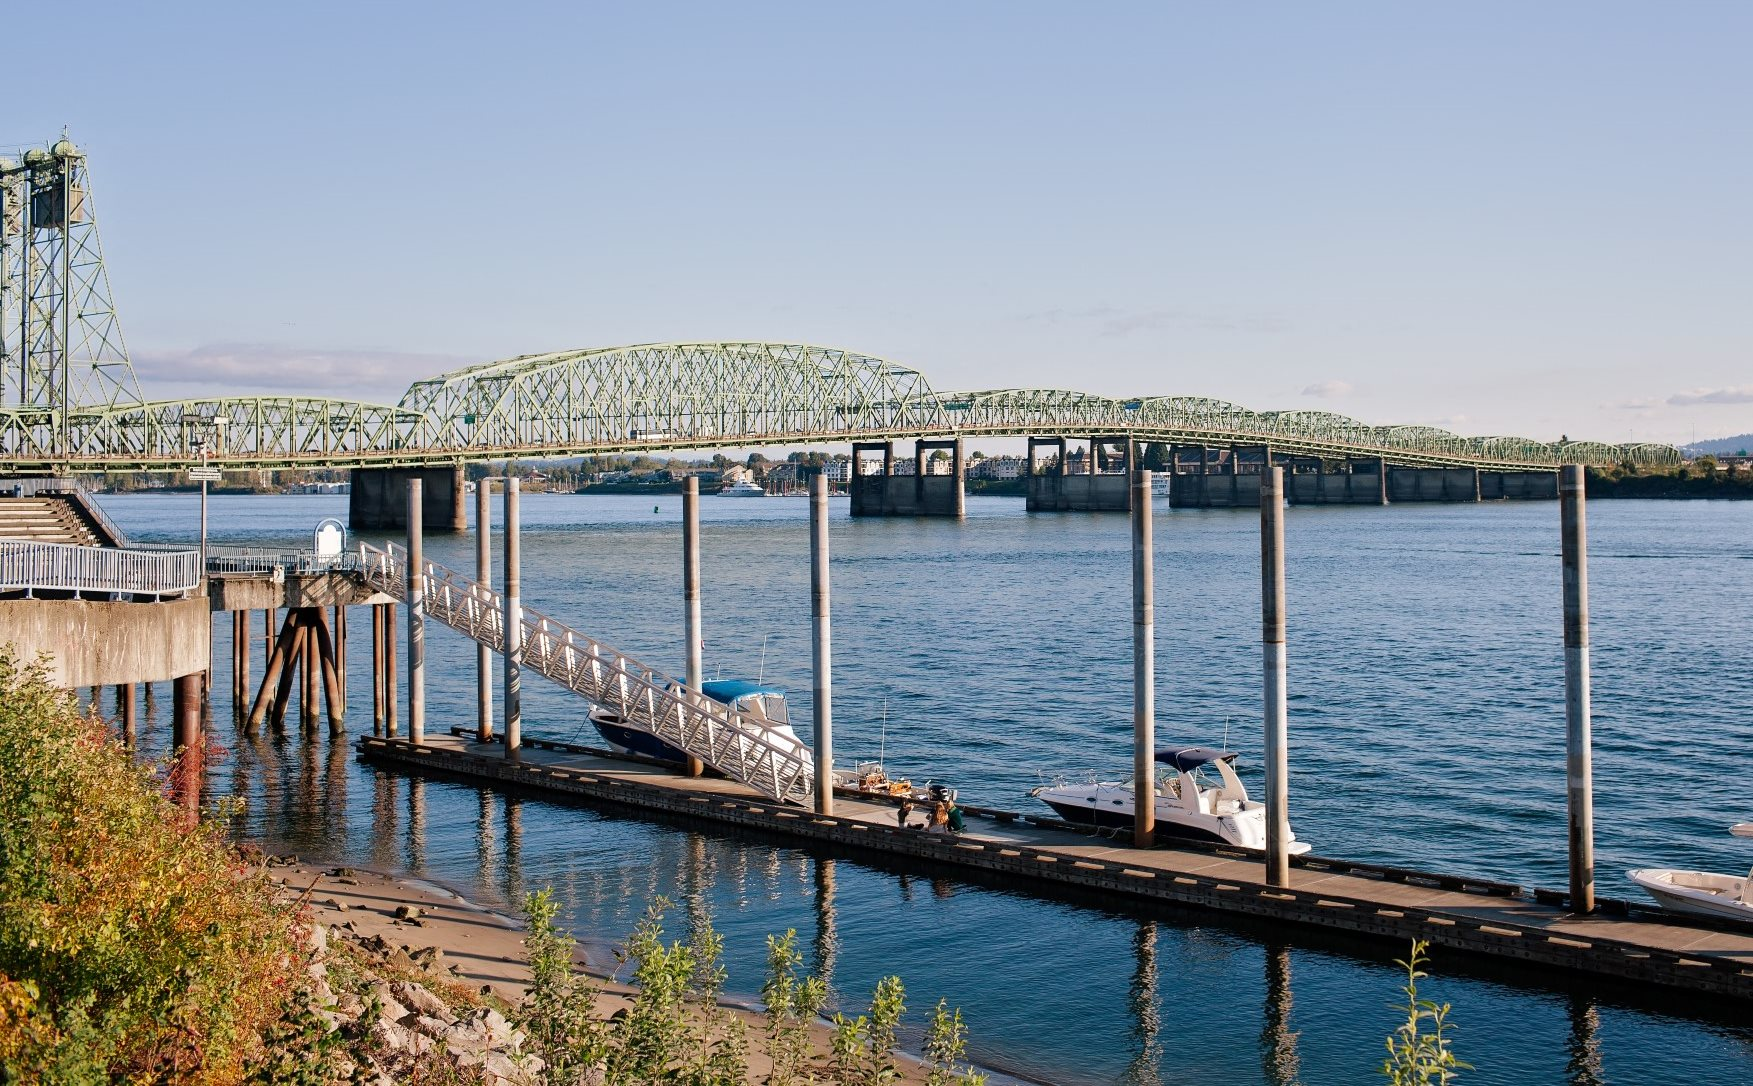 Vancouver, Washington Bridge and Boats on Water